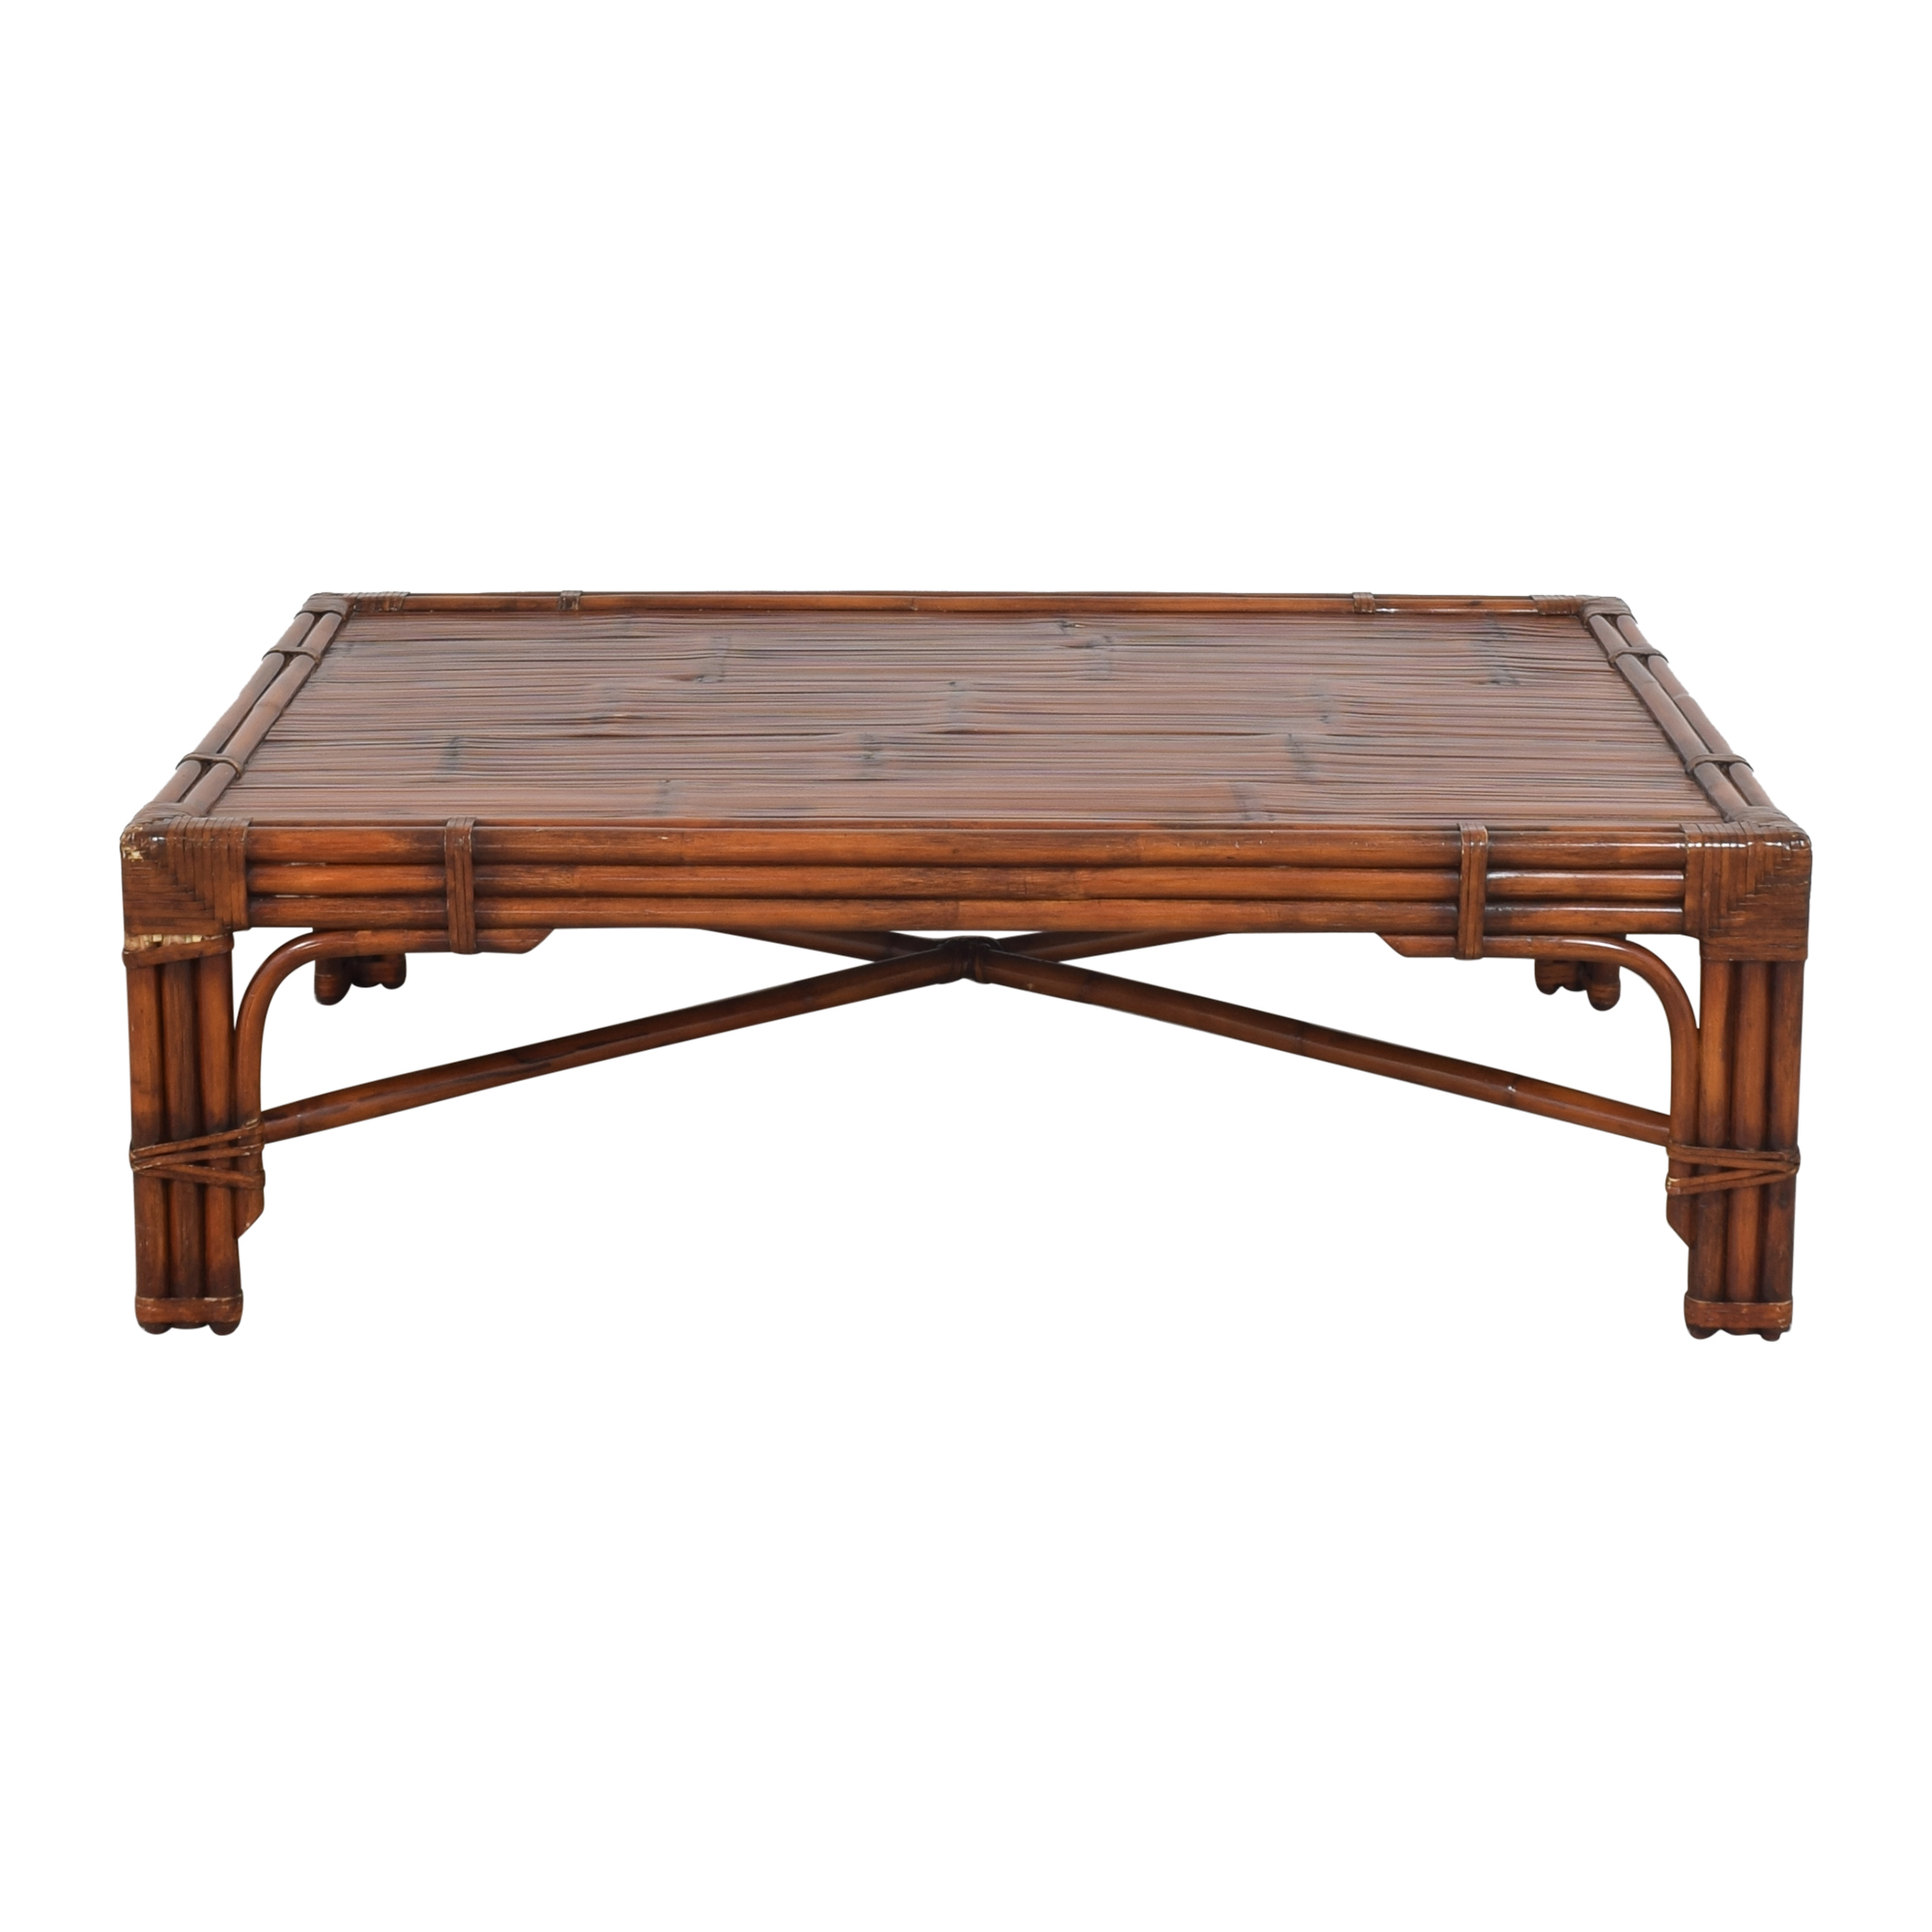 Ralph Lauren Home Ralph Lauren Home Coffee Table